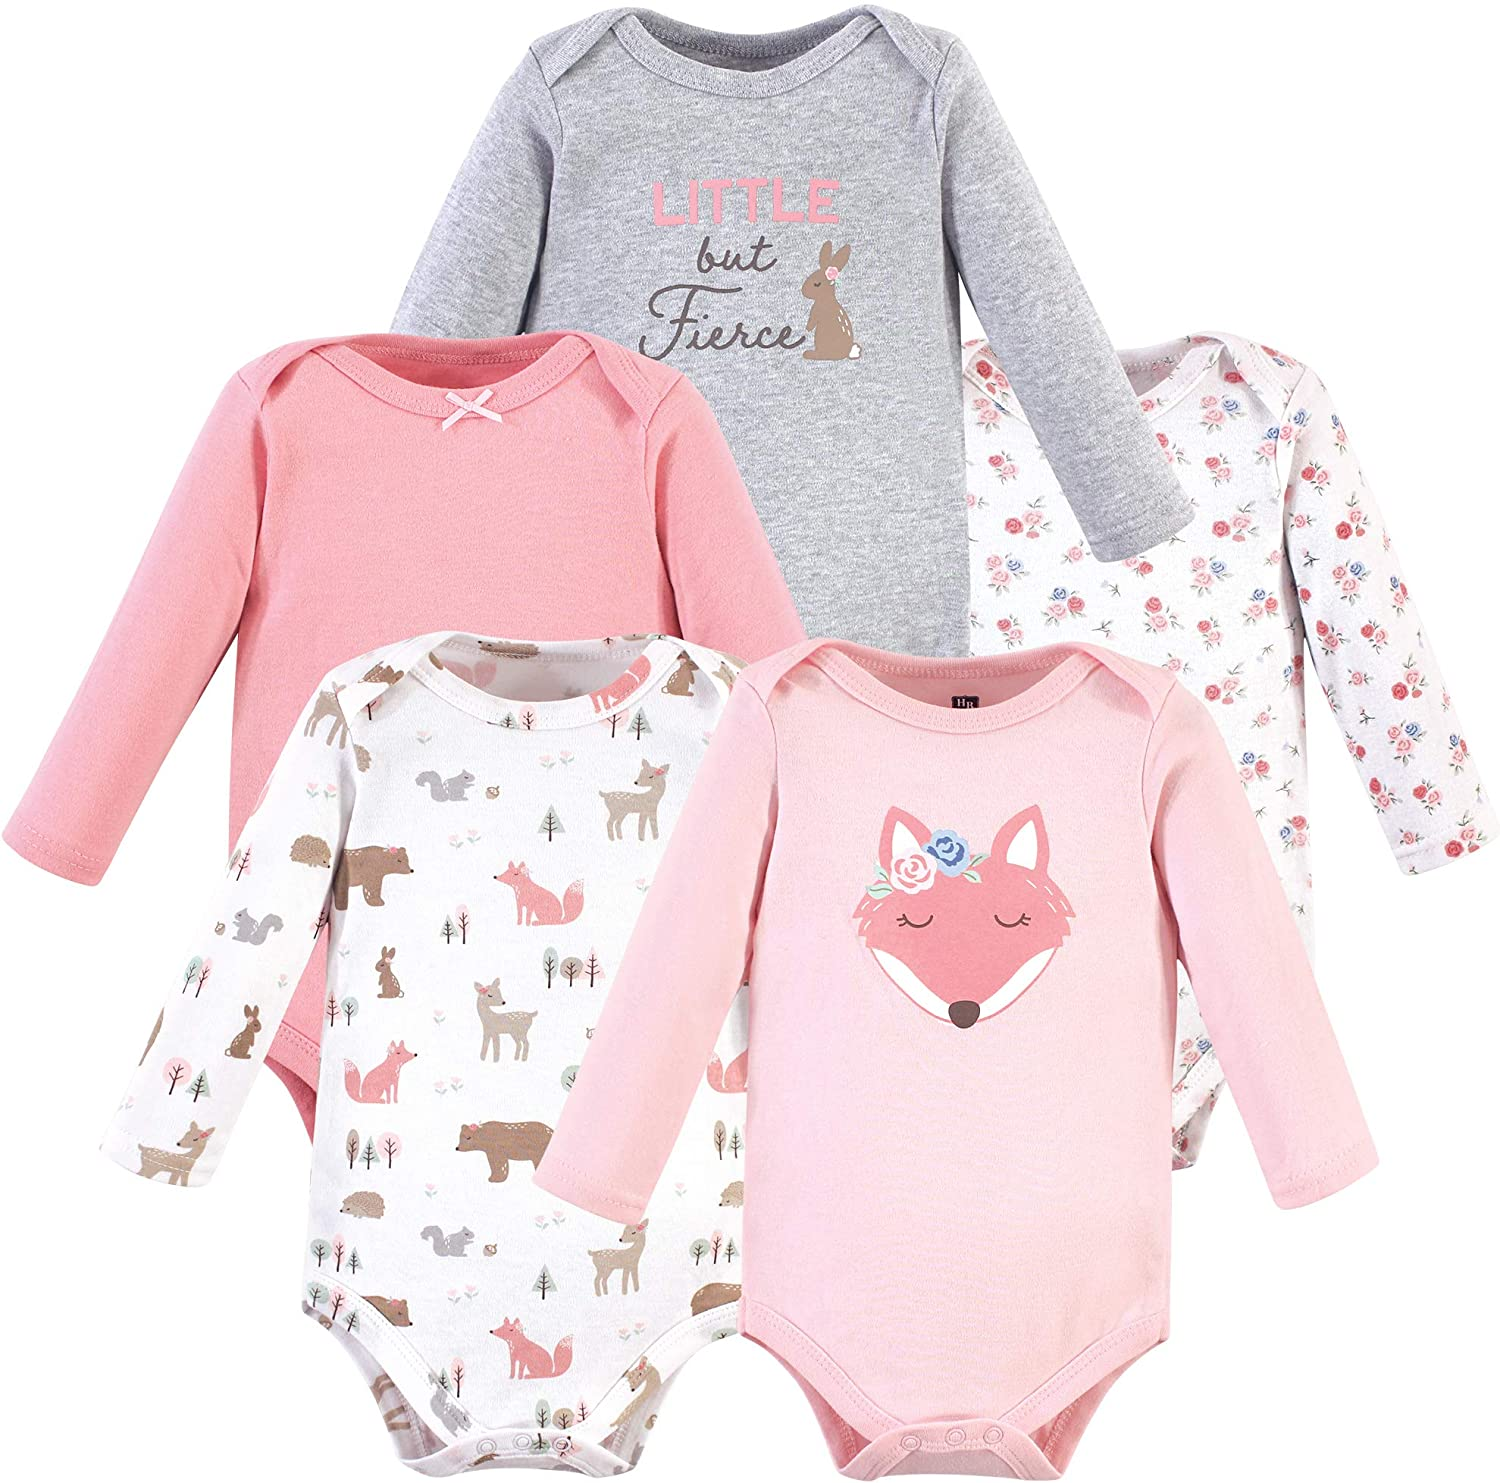 Hudson baby unisex-baby Cotton Long-sleeve Bodysuits Baby and Toddler T-Shirt Set